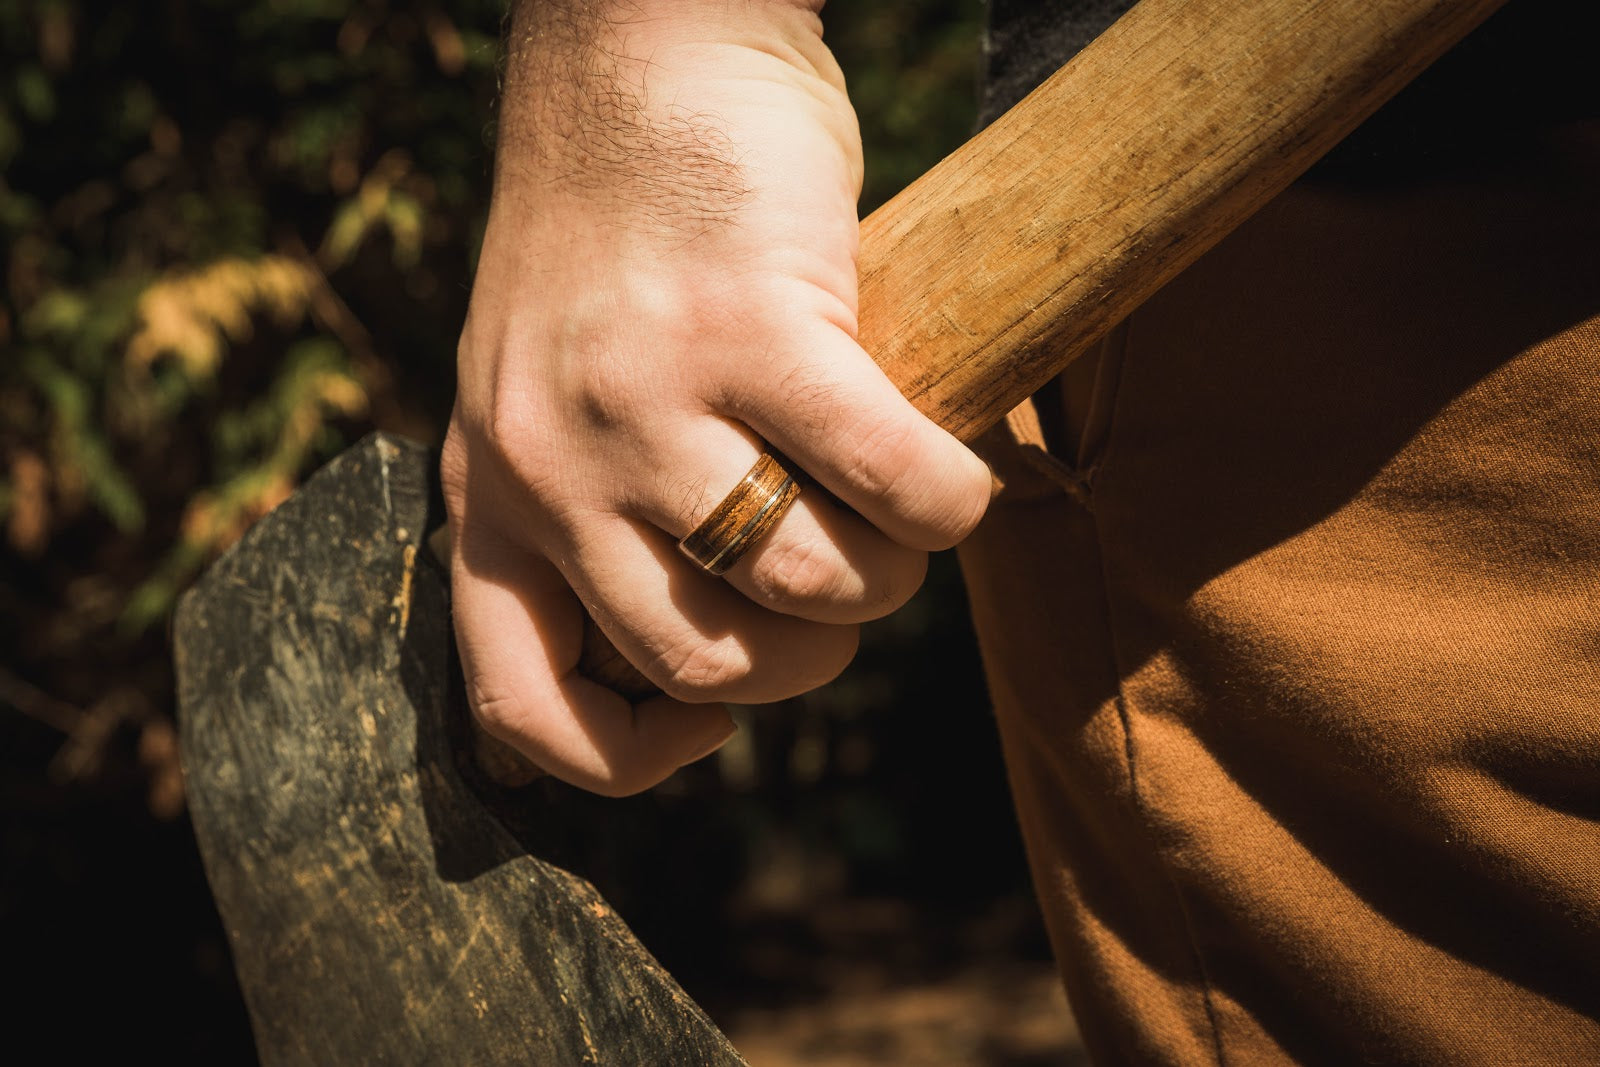 Hypoallergenic Wedding Rings: A Solution to Your Metal Allergy